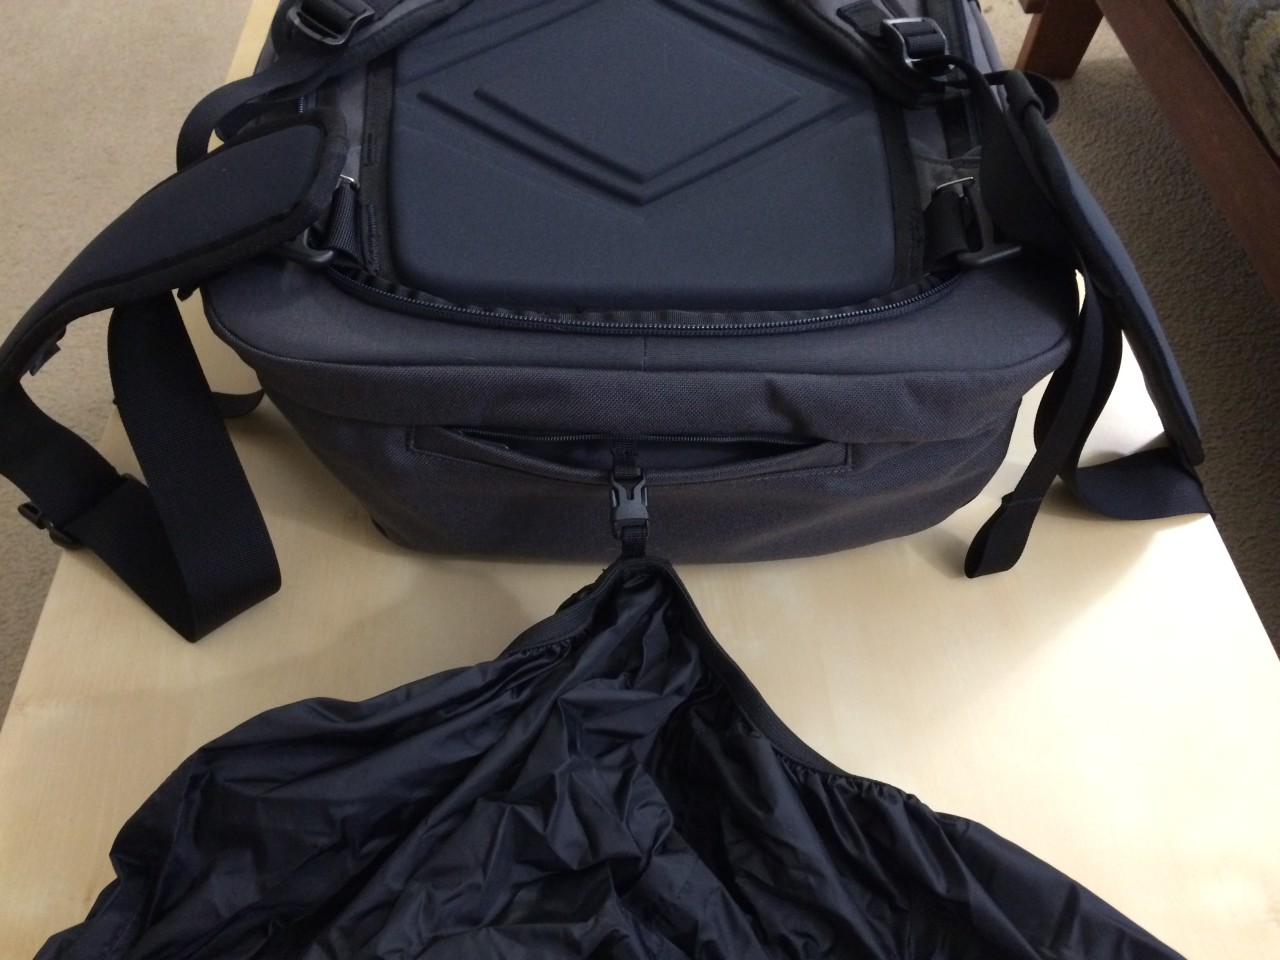 Minaal backpack rain cover